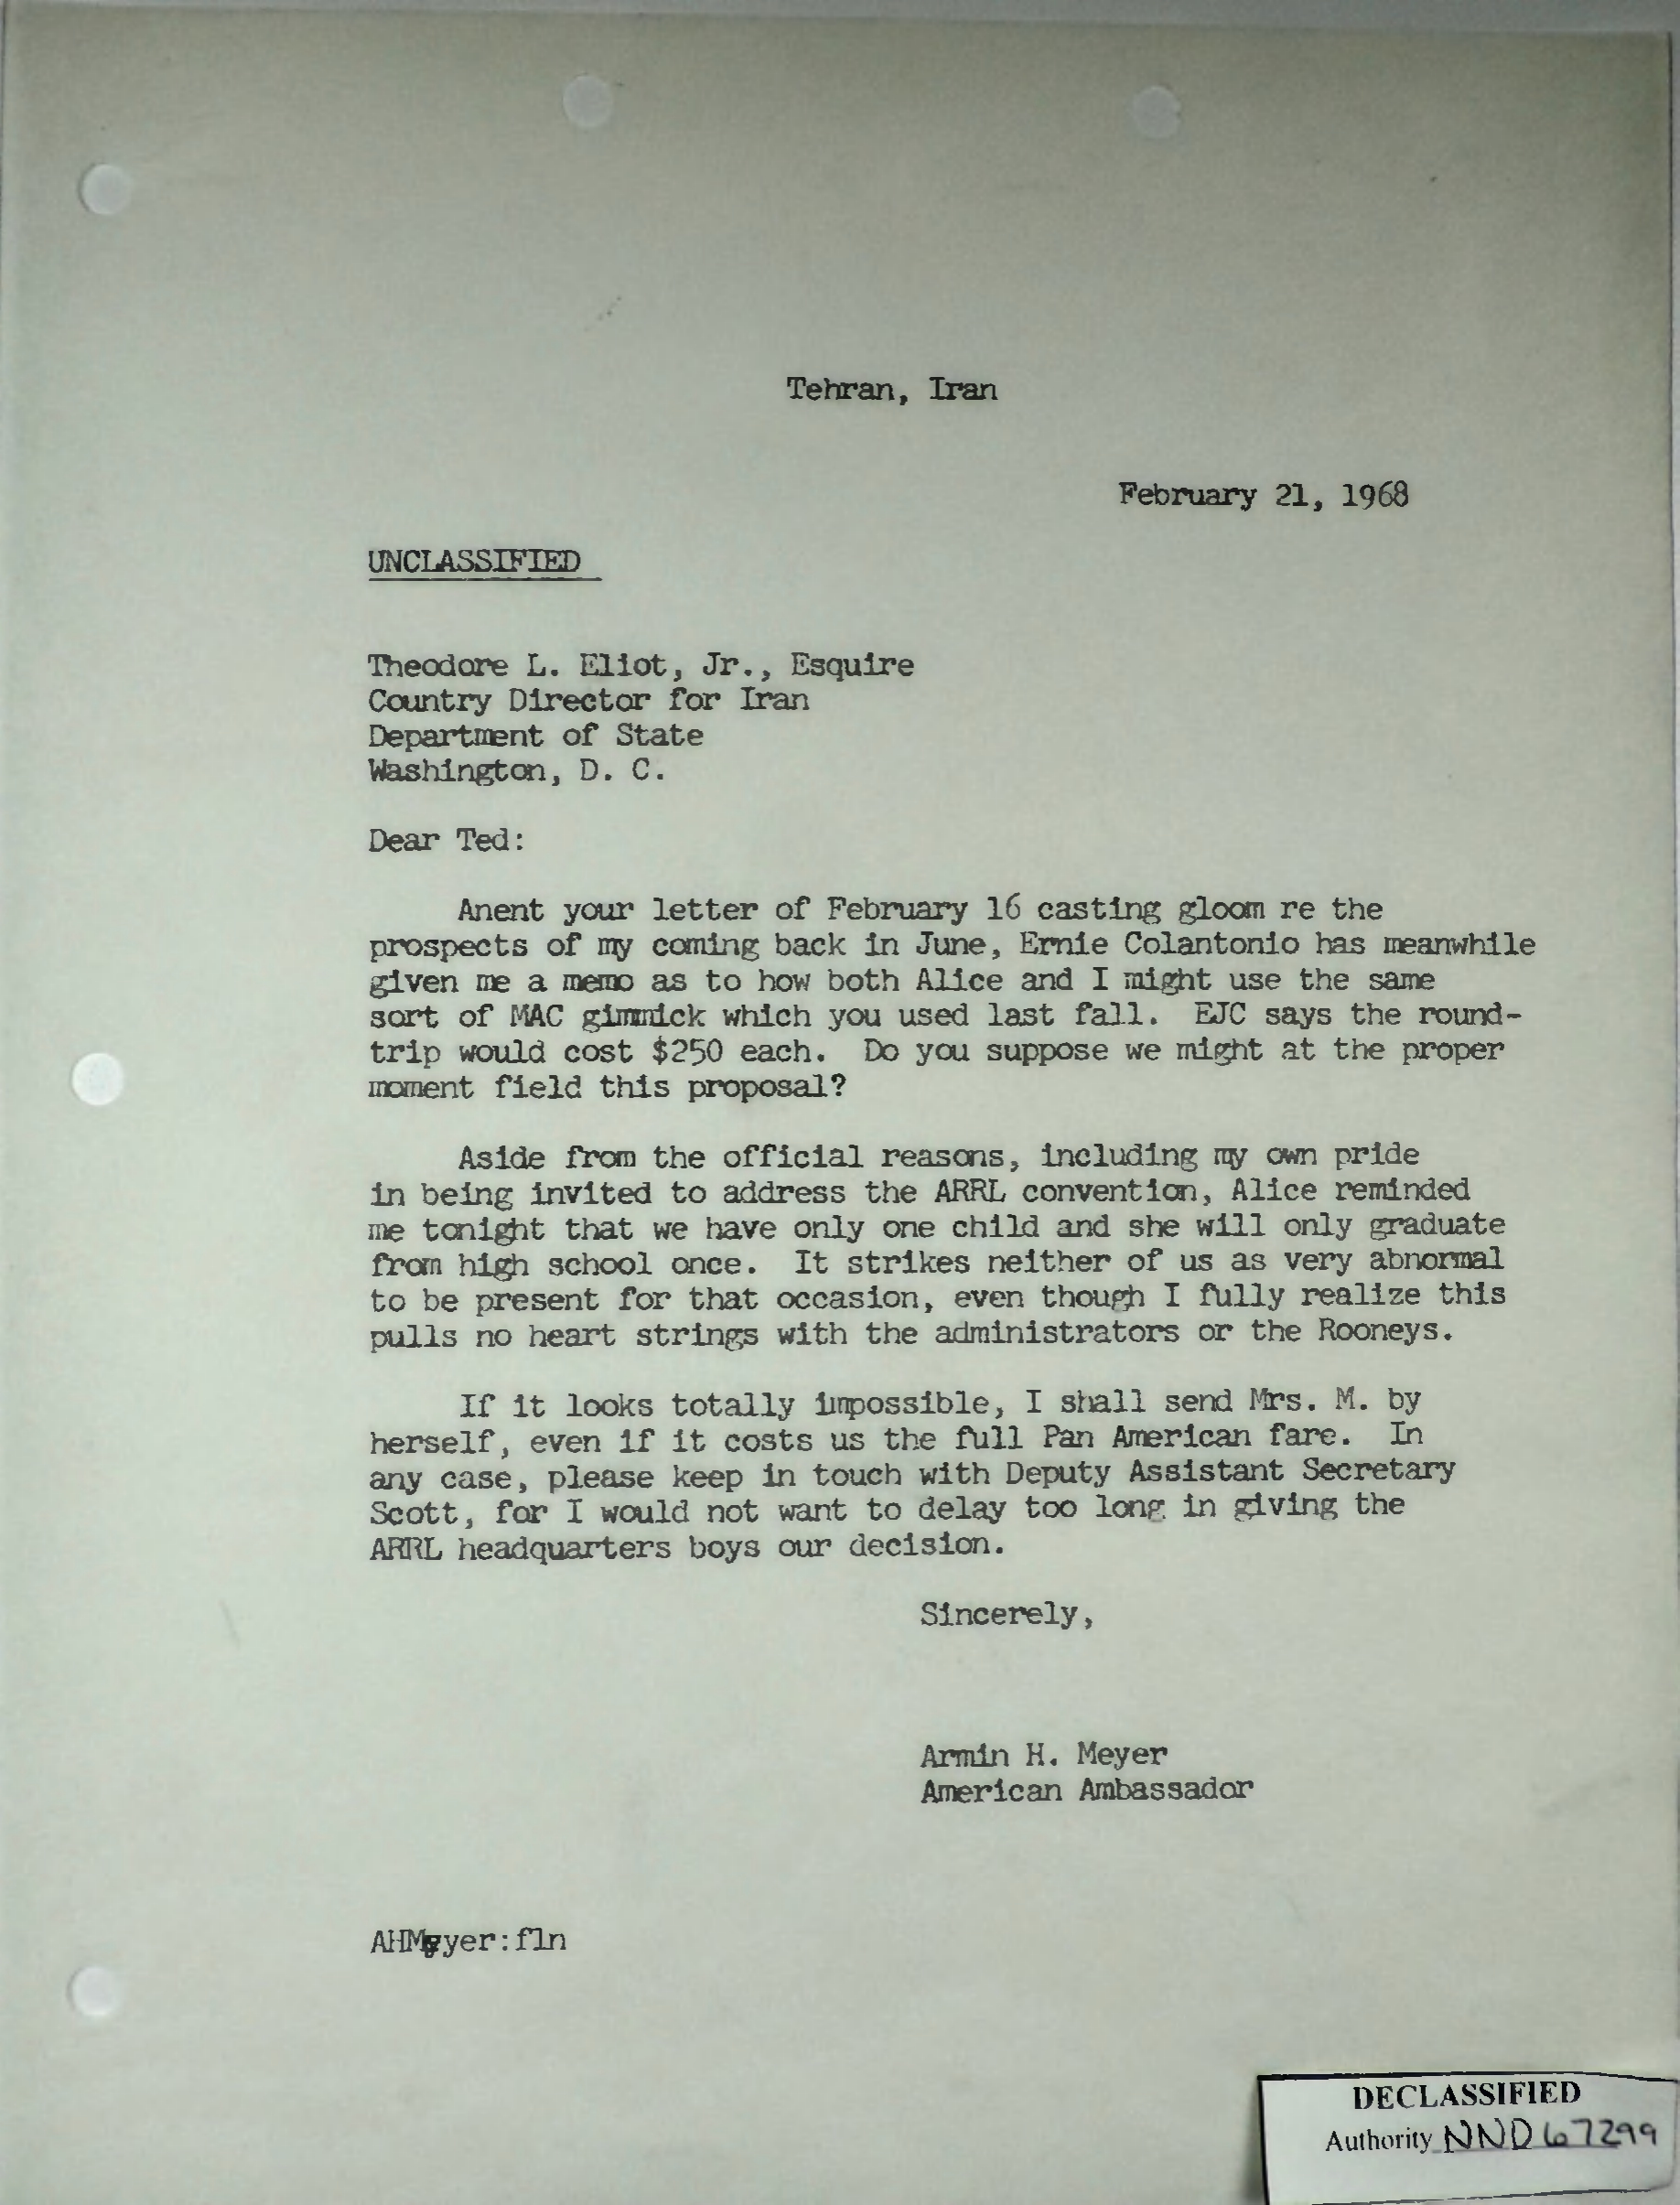 Letter from Armin H  Meyer to Theodore L  Eliot, Jr , February 21